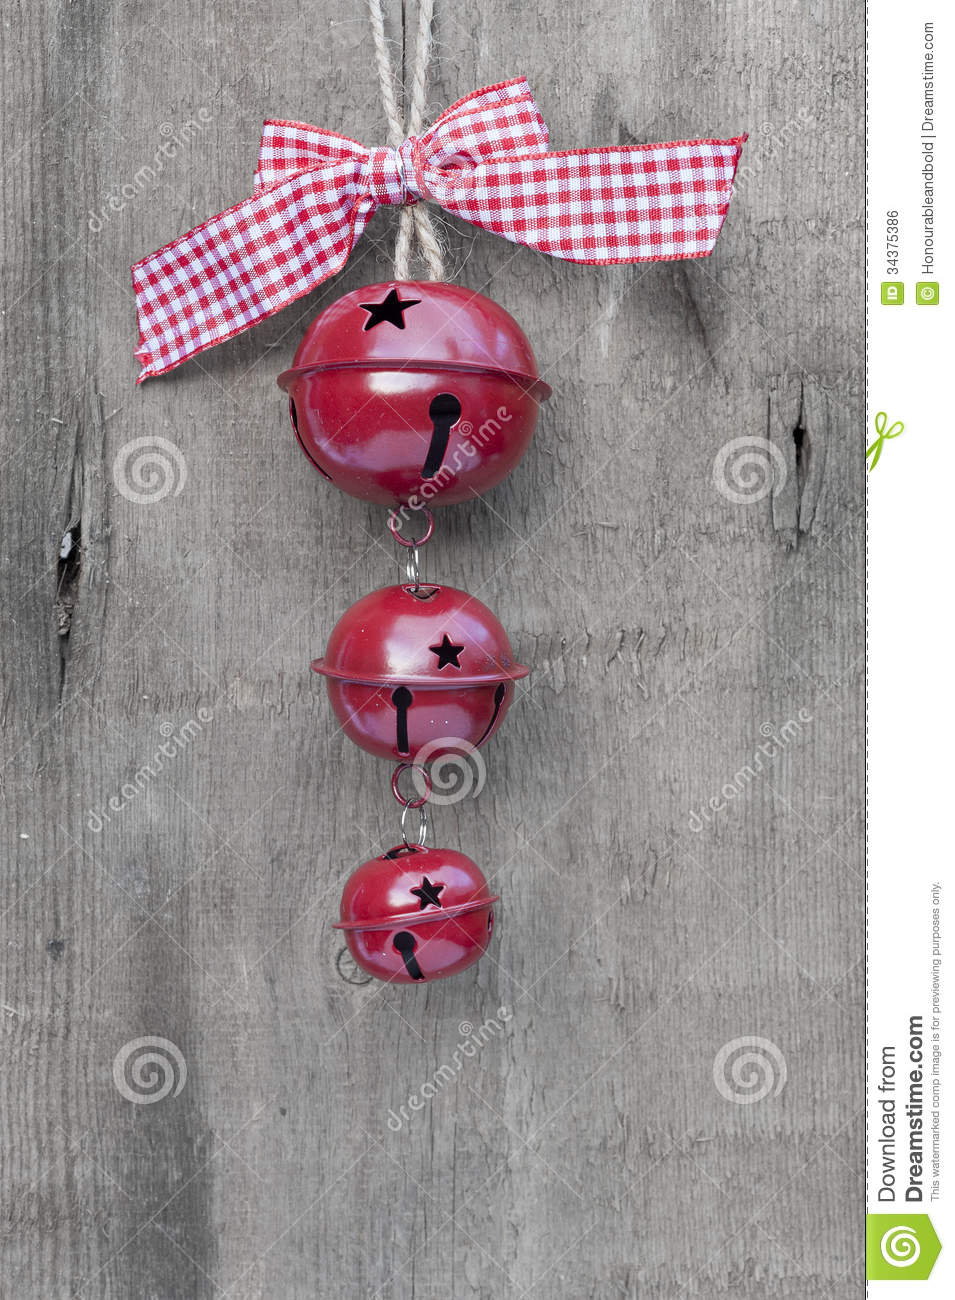 Generic machine made christmas bells ornament on rustic